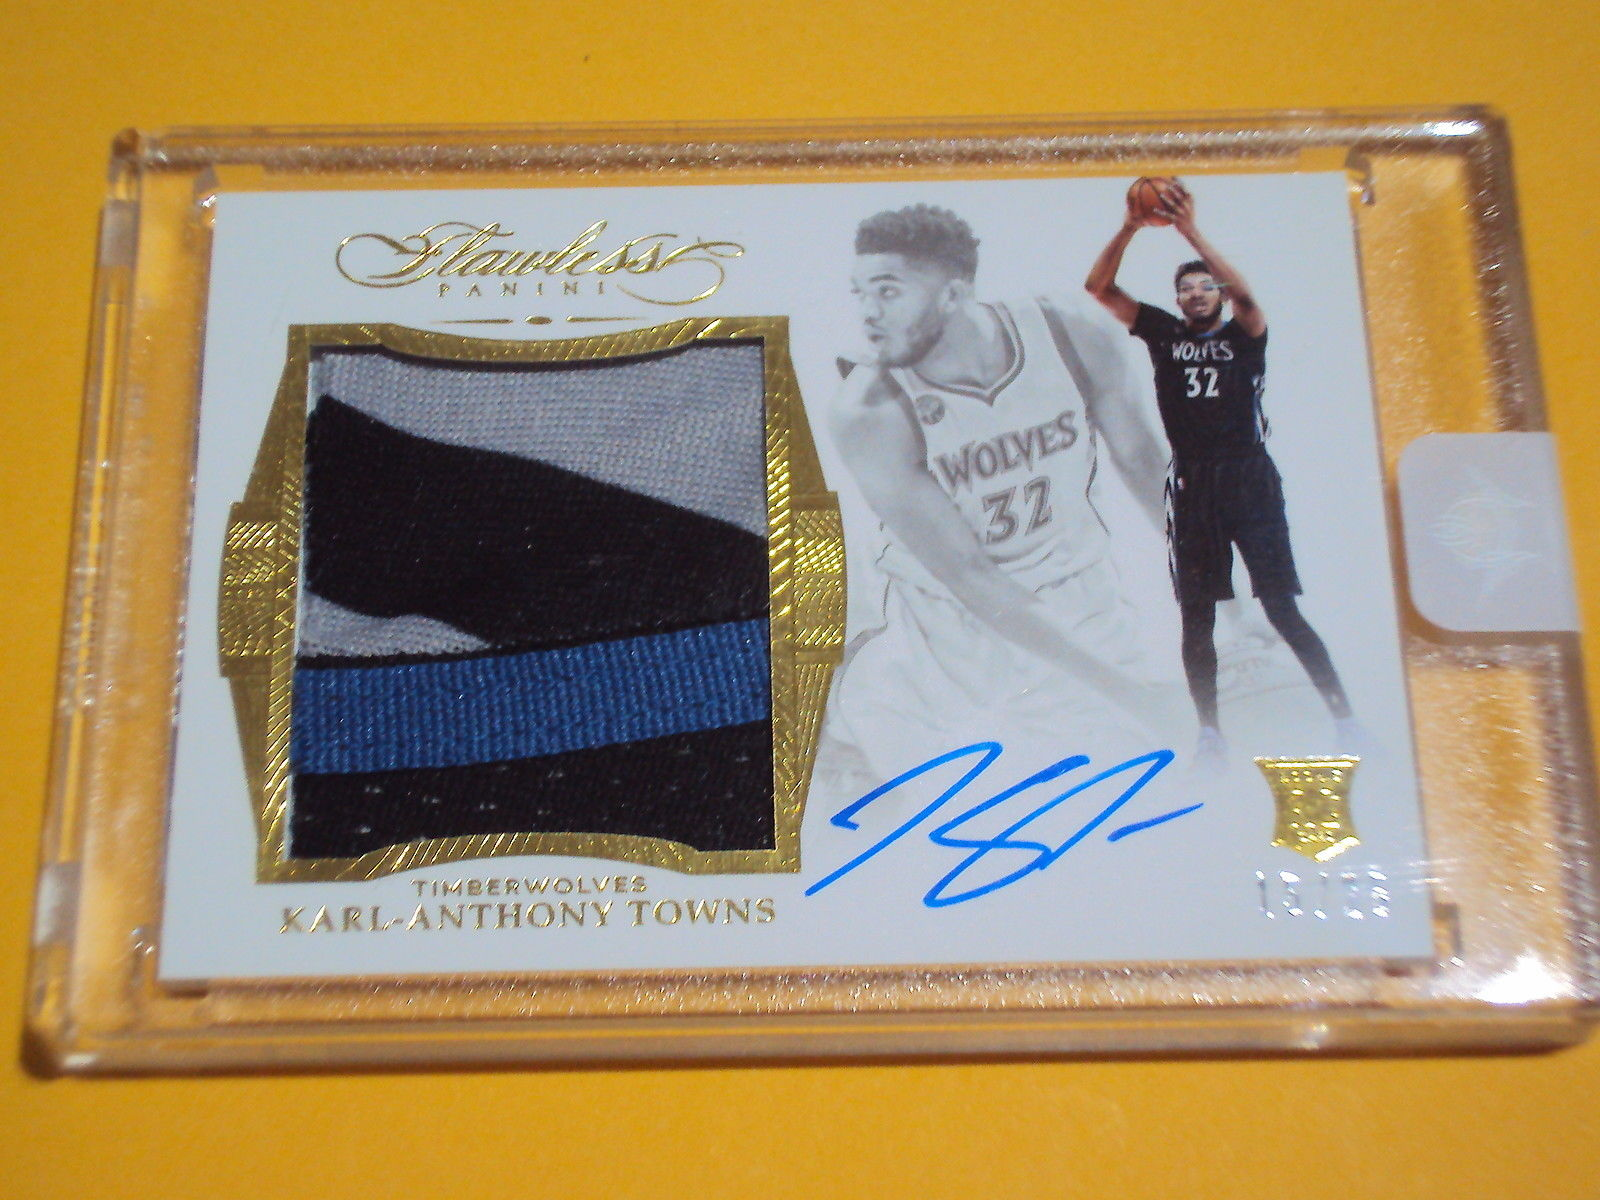 201516 PANINI FLAWLESS ROOKIE PATCH AUTO KARL ANTHONY TOWNS 15 OF 25